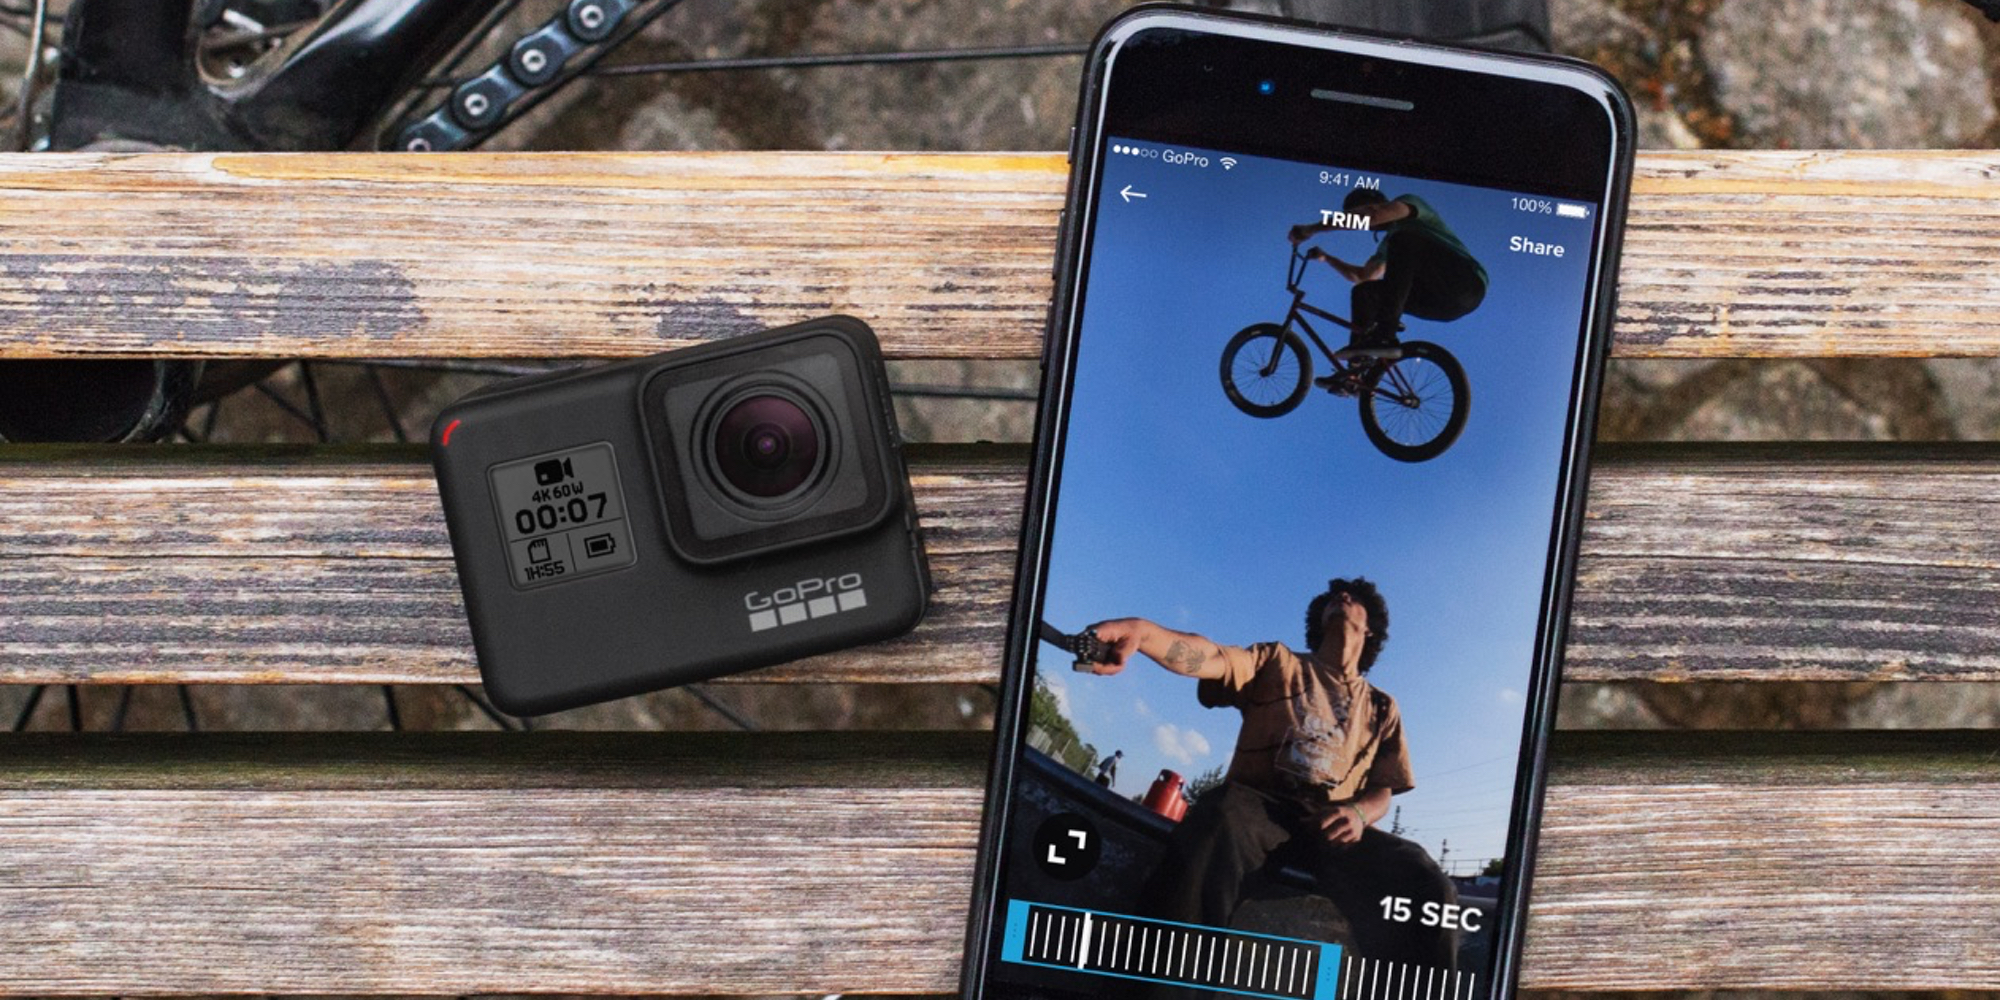 Bundle GoPro HERO7 with a $50 GC, travel kit, and more for $330 ($460 value) - 9to5Toys